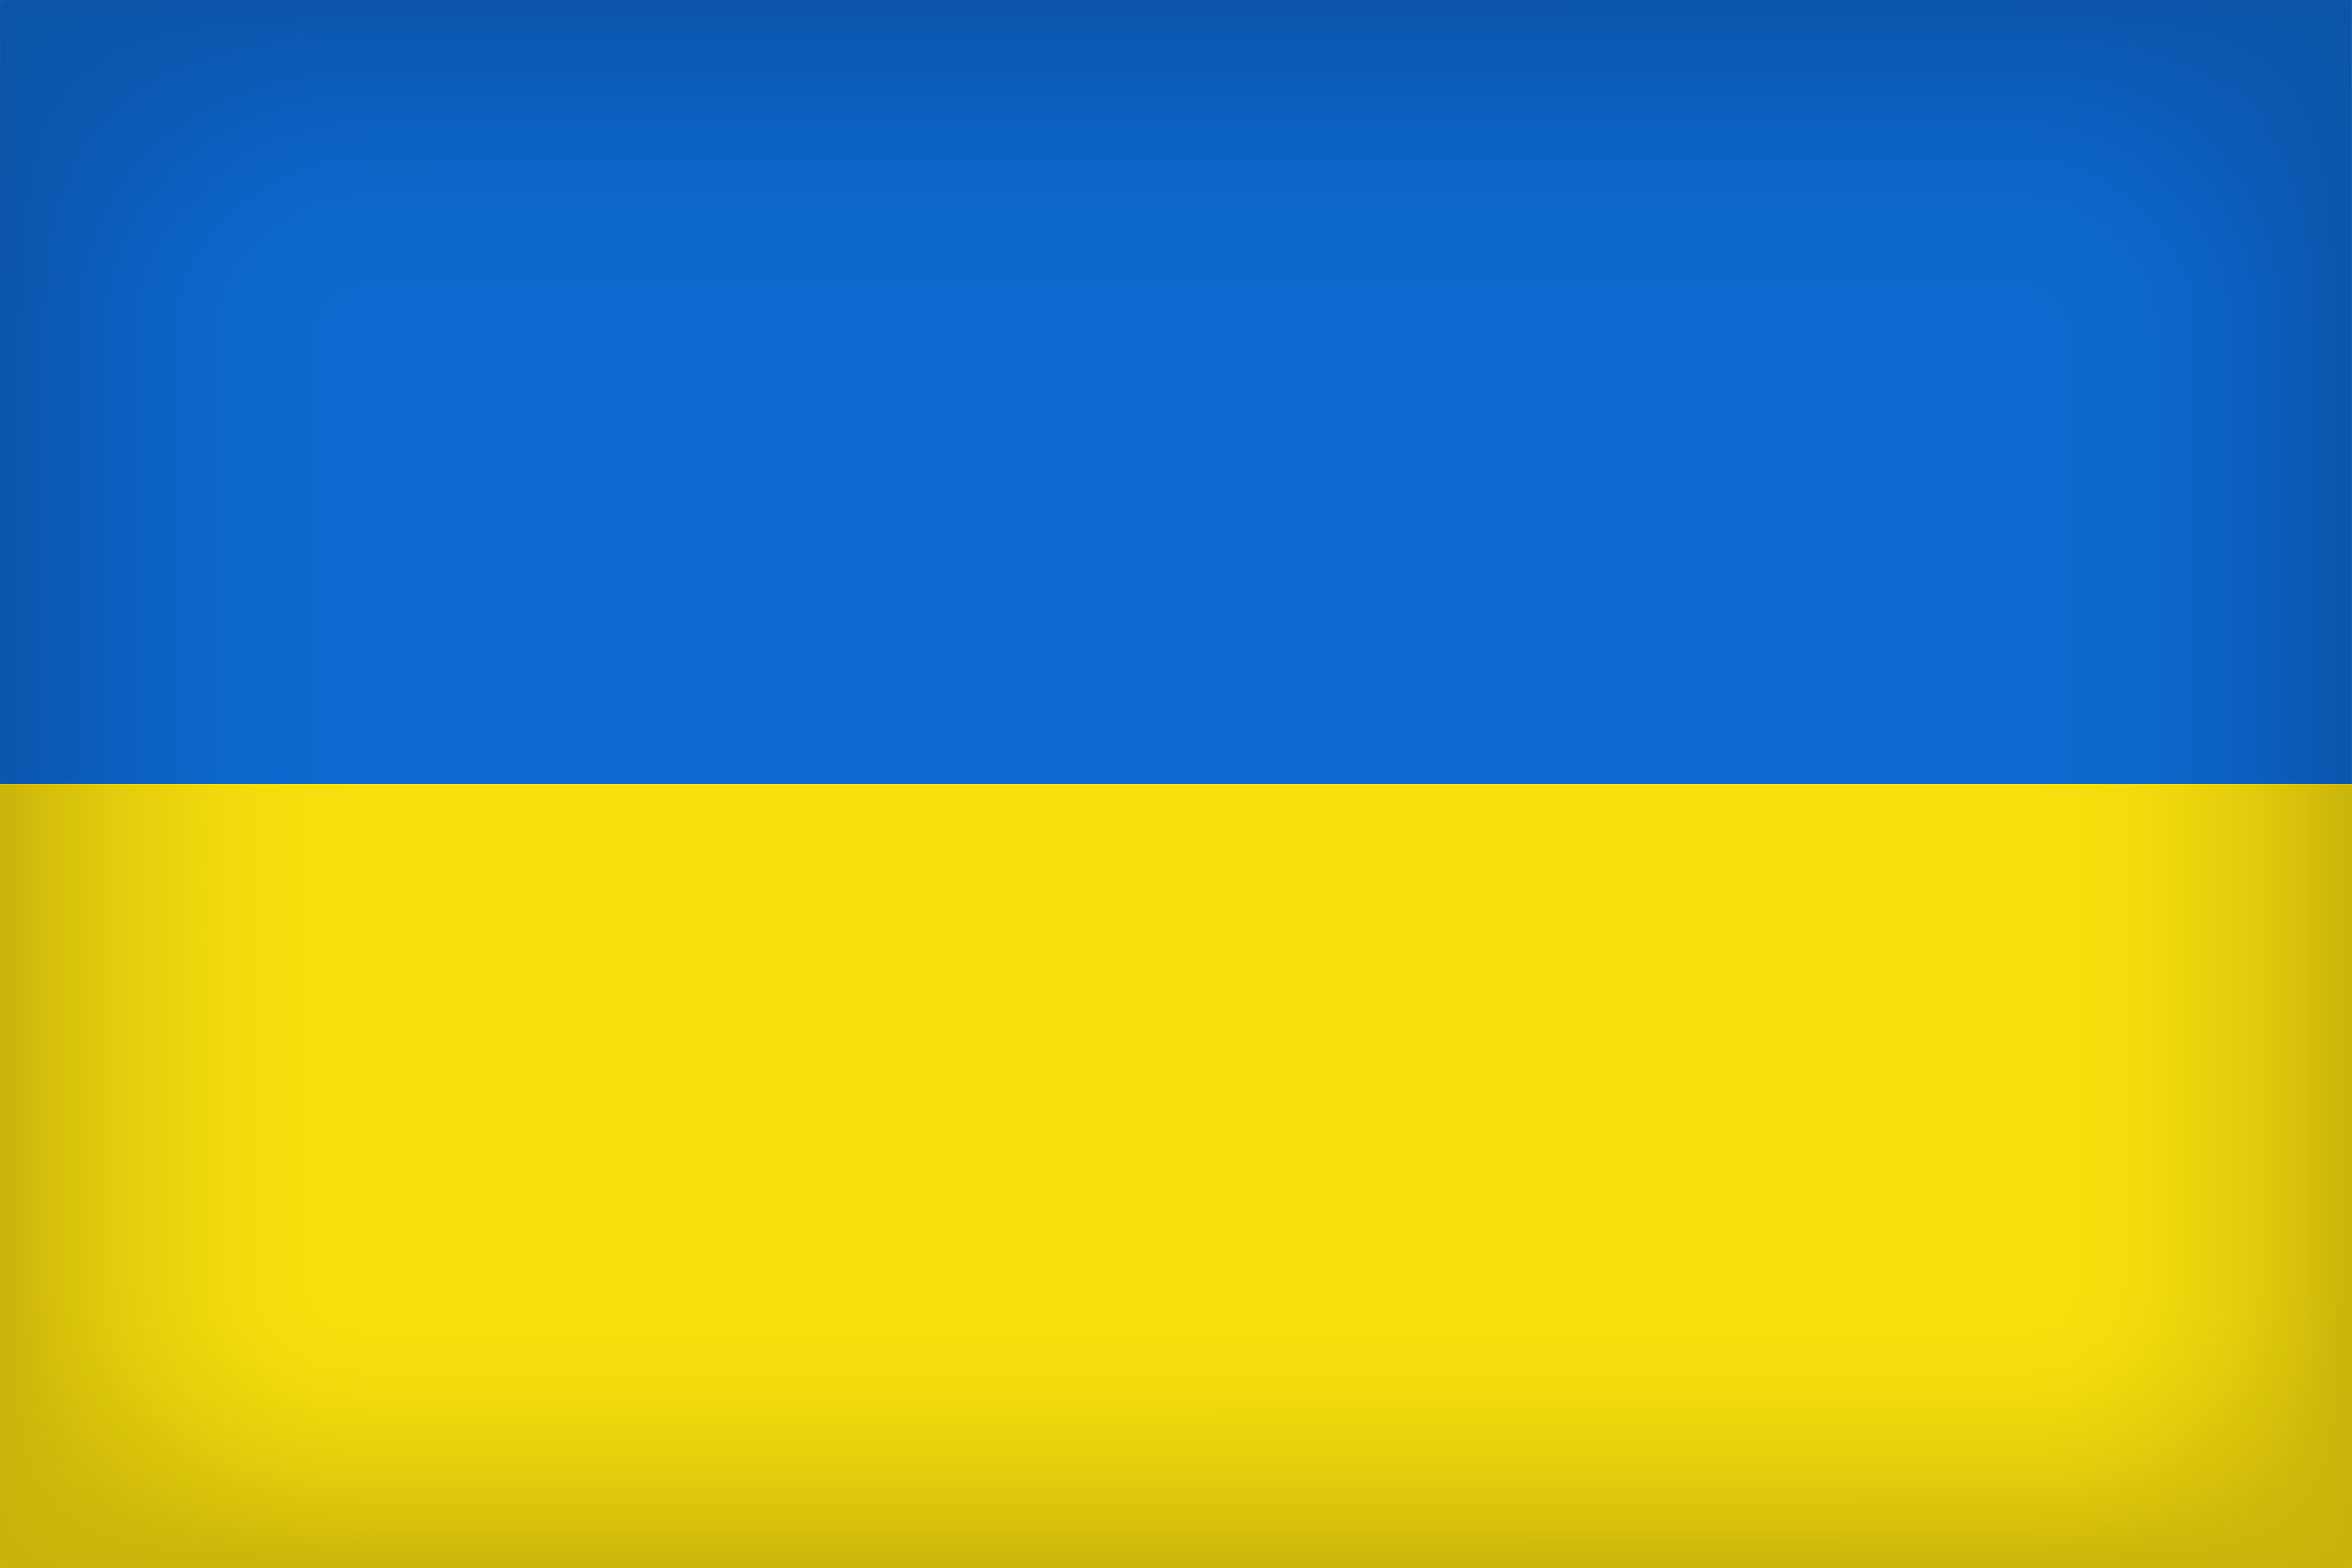 Ukraine_Large_Flag